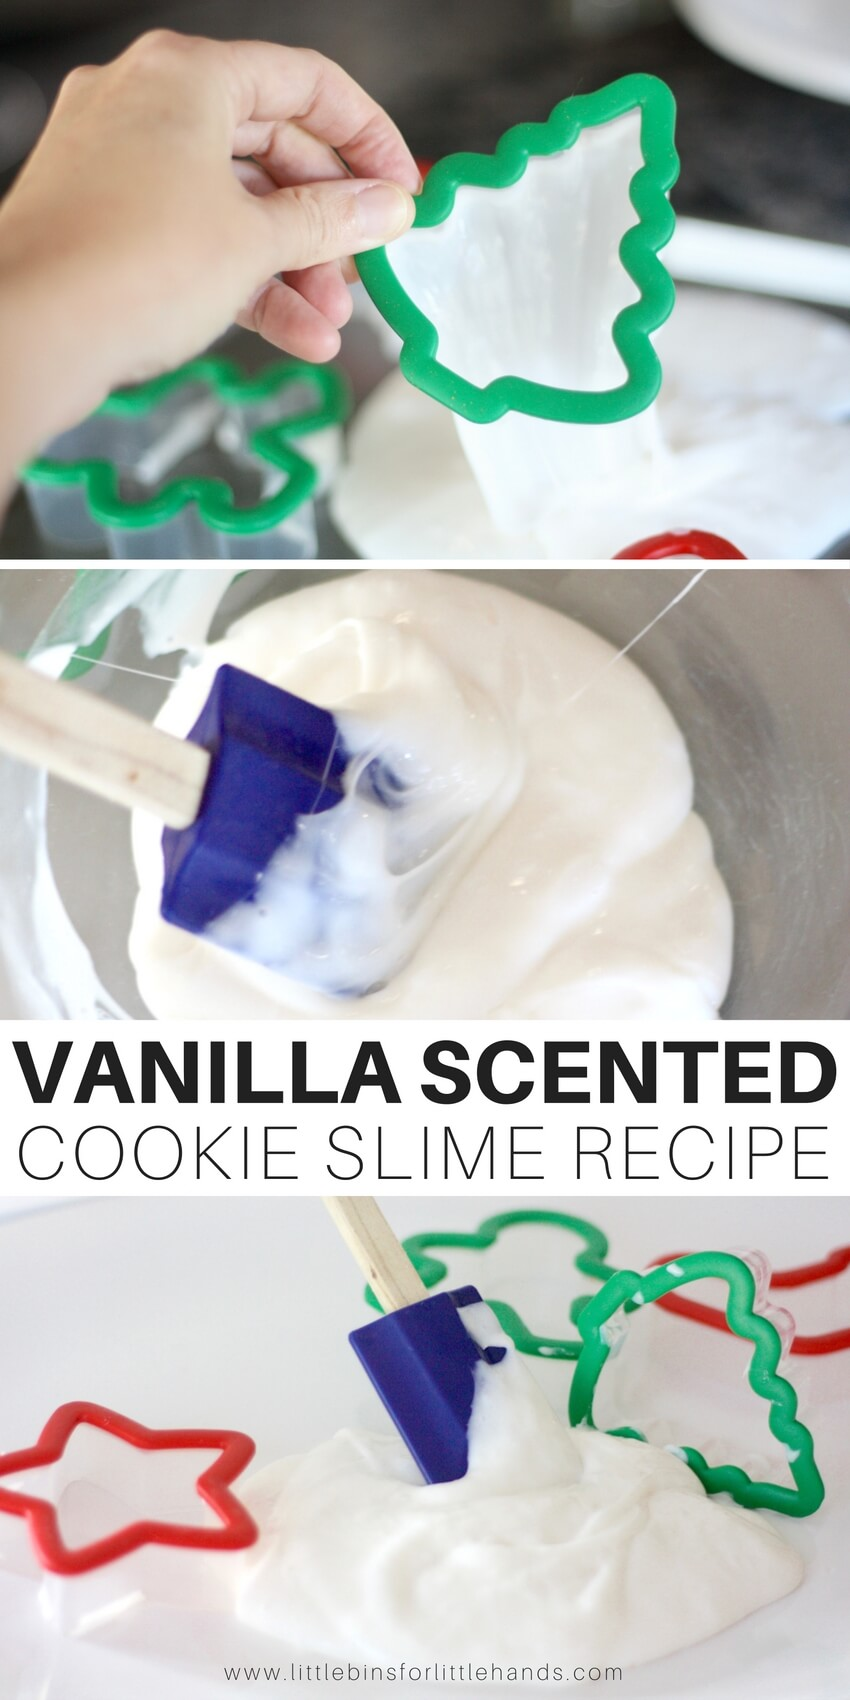 Learn how to make vanilla scented slime recipe with our easy to make homemade slime recipes. Cookie theme slime for great Christmas science and slime recipes this season.